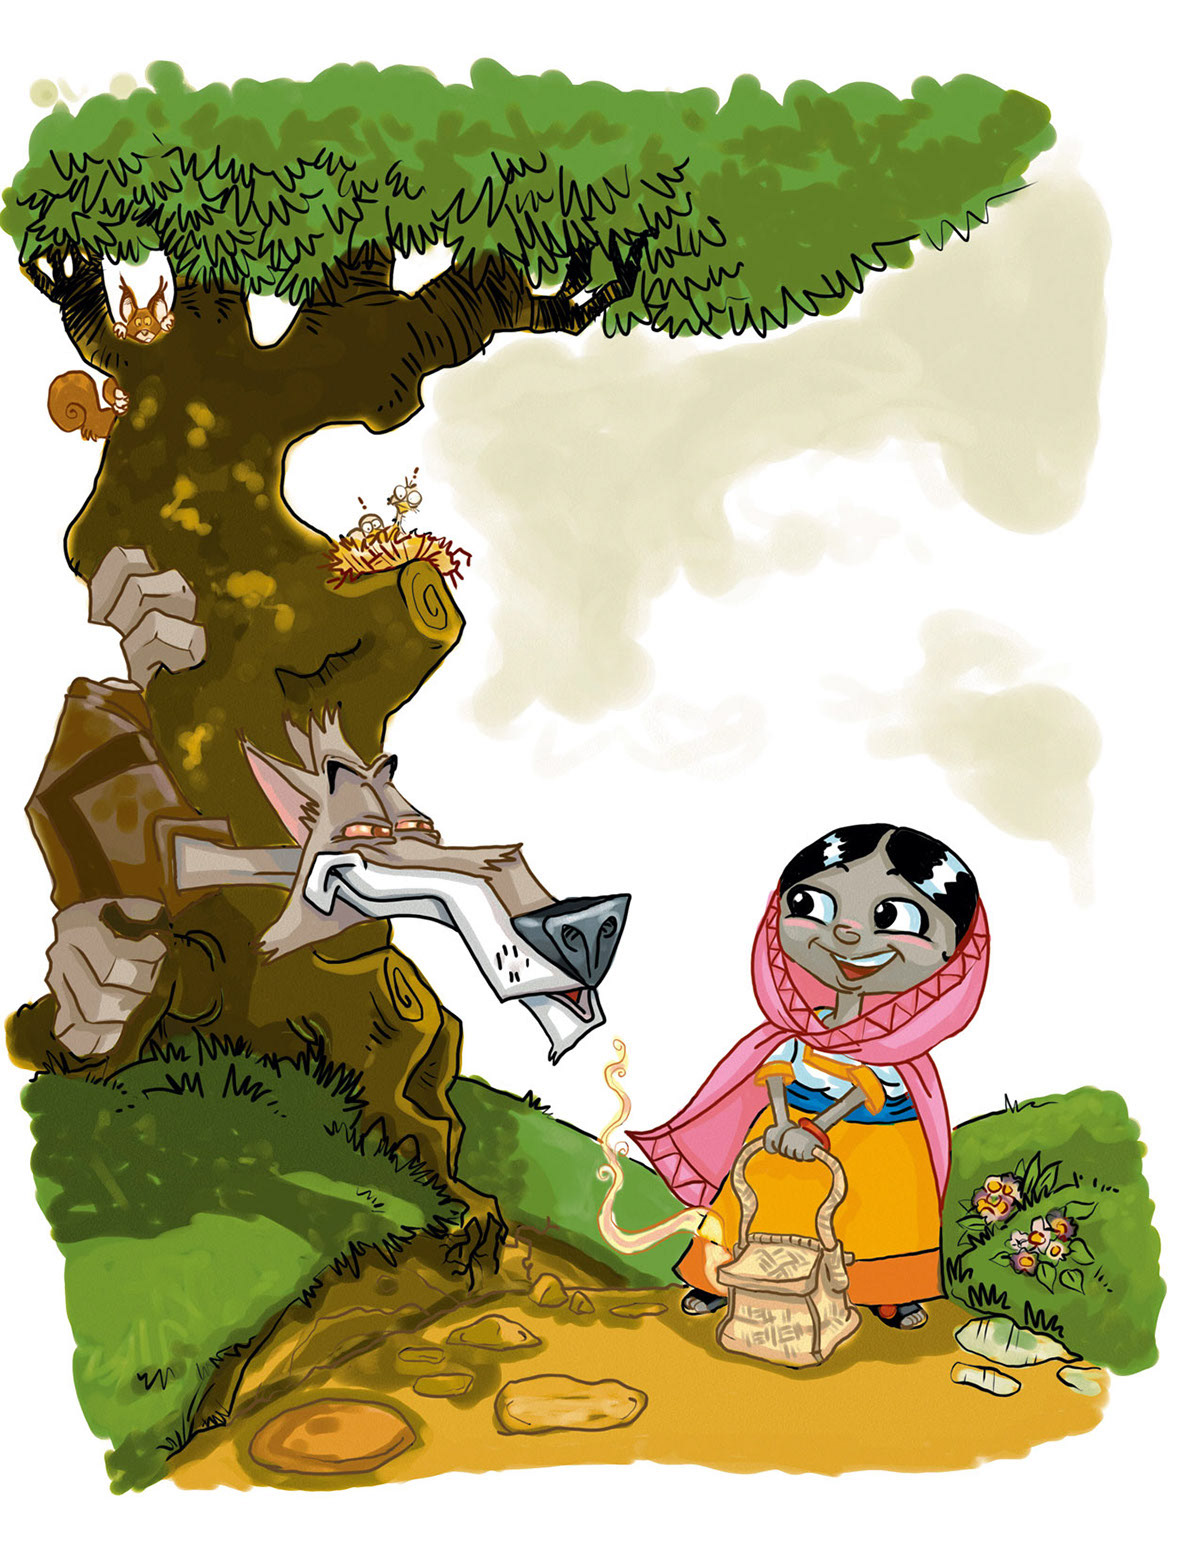 TWISTED FABLE: Little Pink Ridding Hood